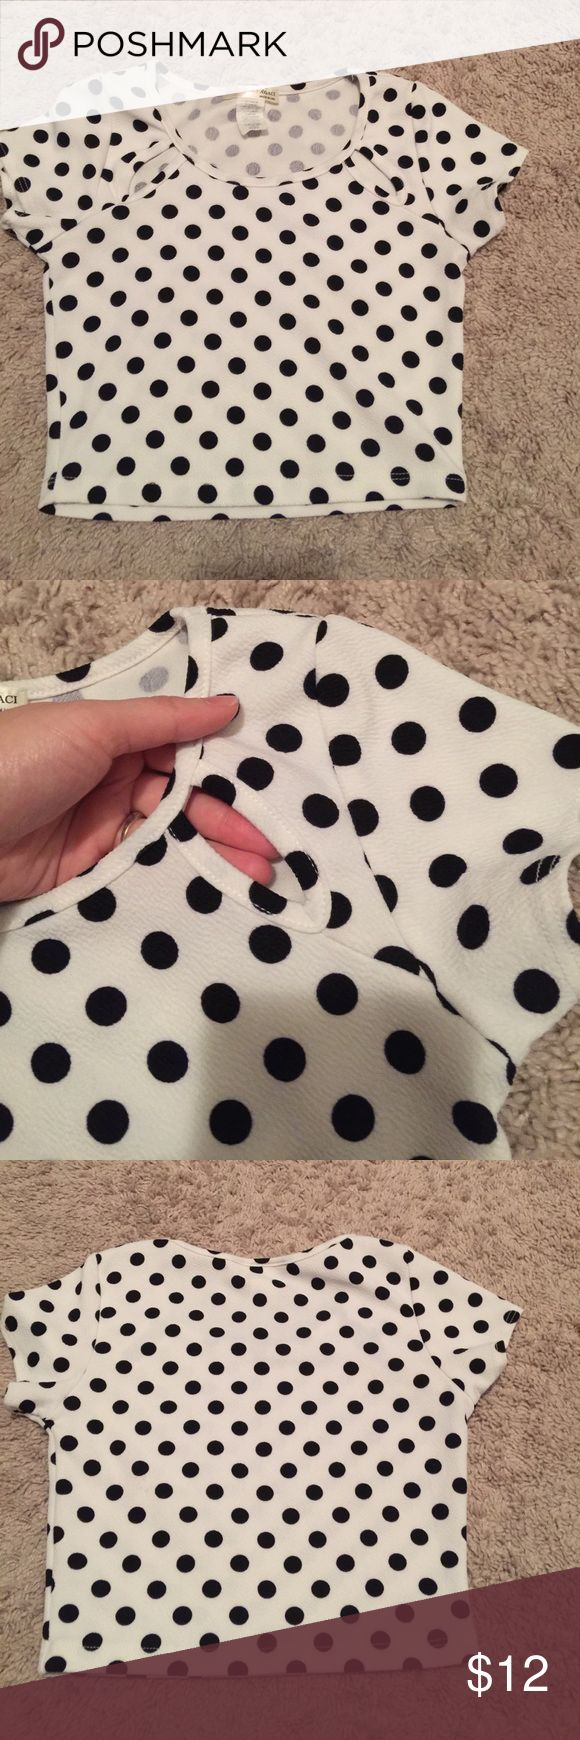 black and white polkas dot crop top wore couple times. in great condition a'gaci Tops Crop Tops